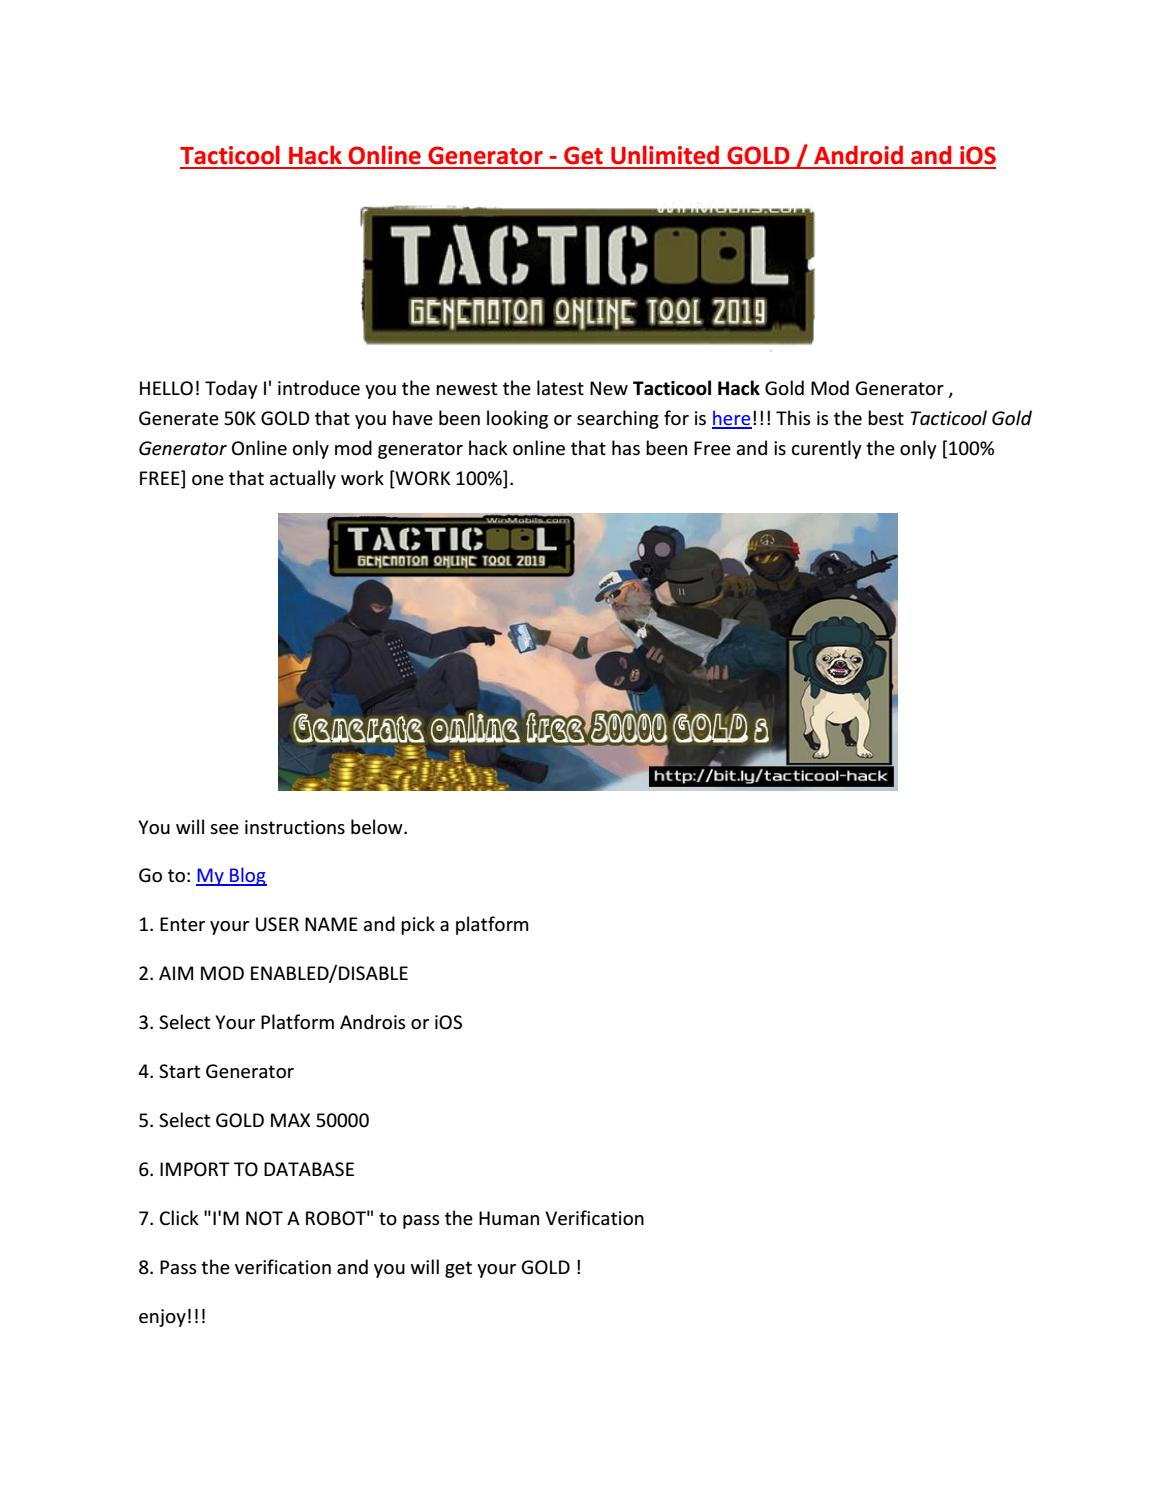 Tacticool Hack GOLD Mod Generator - Generate 50000 Free GOLD by